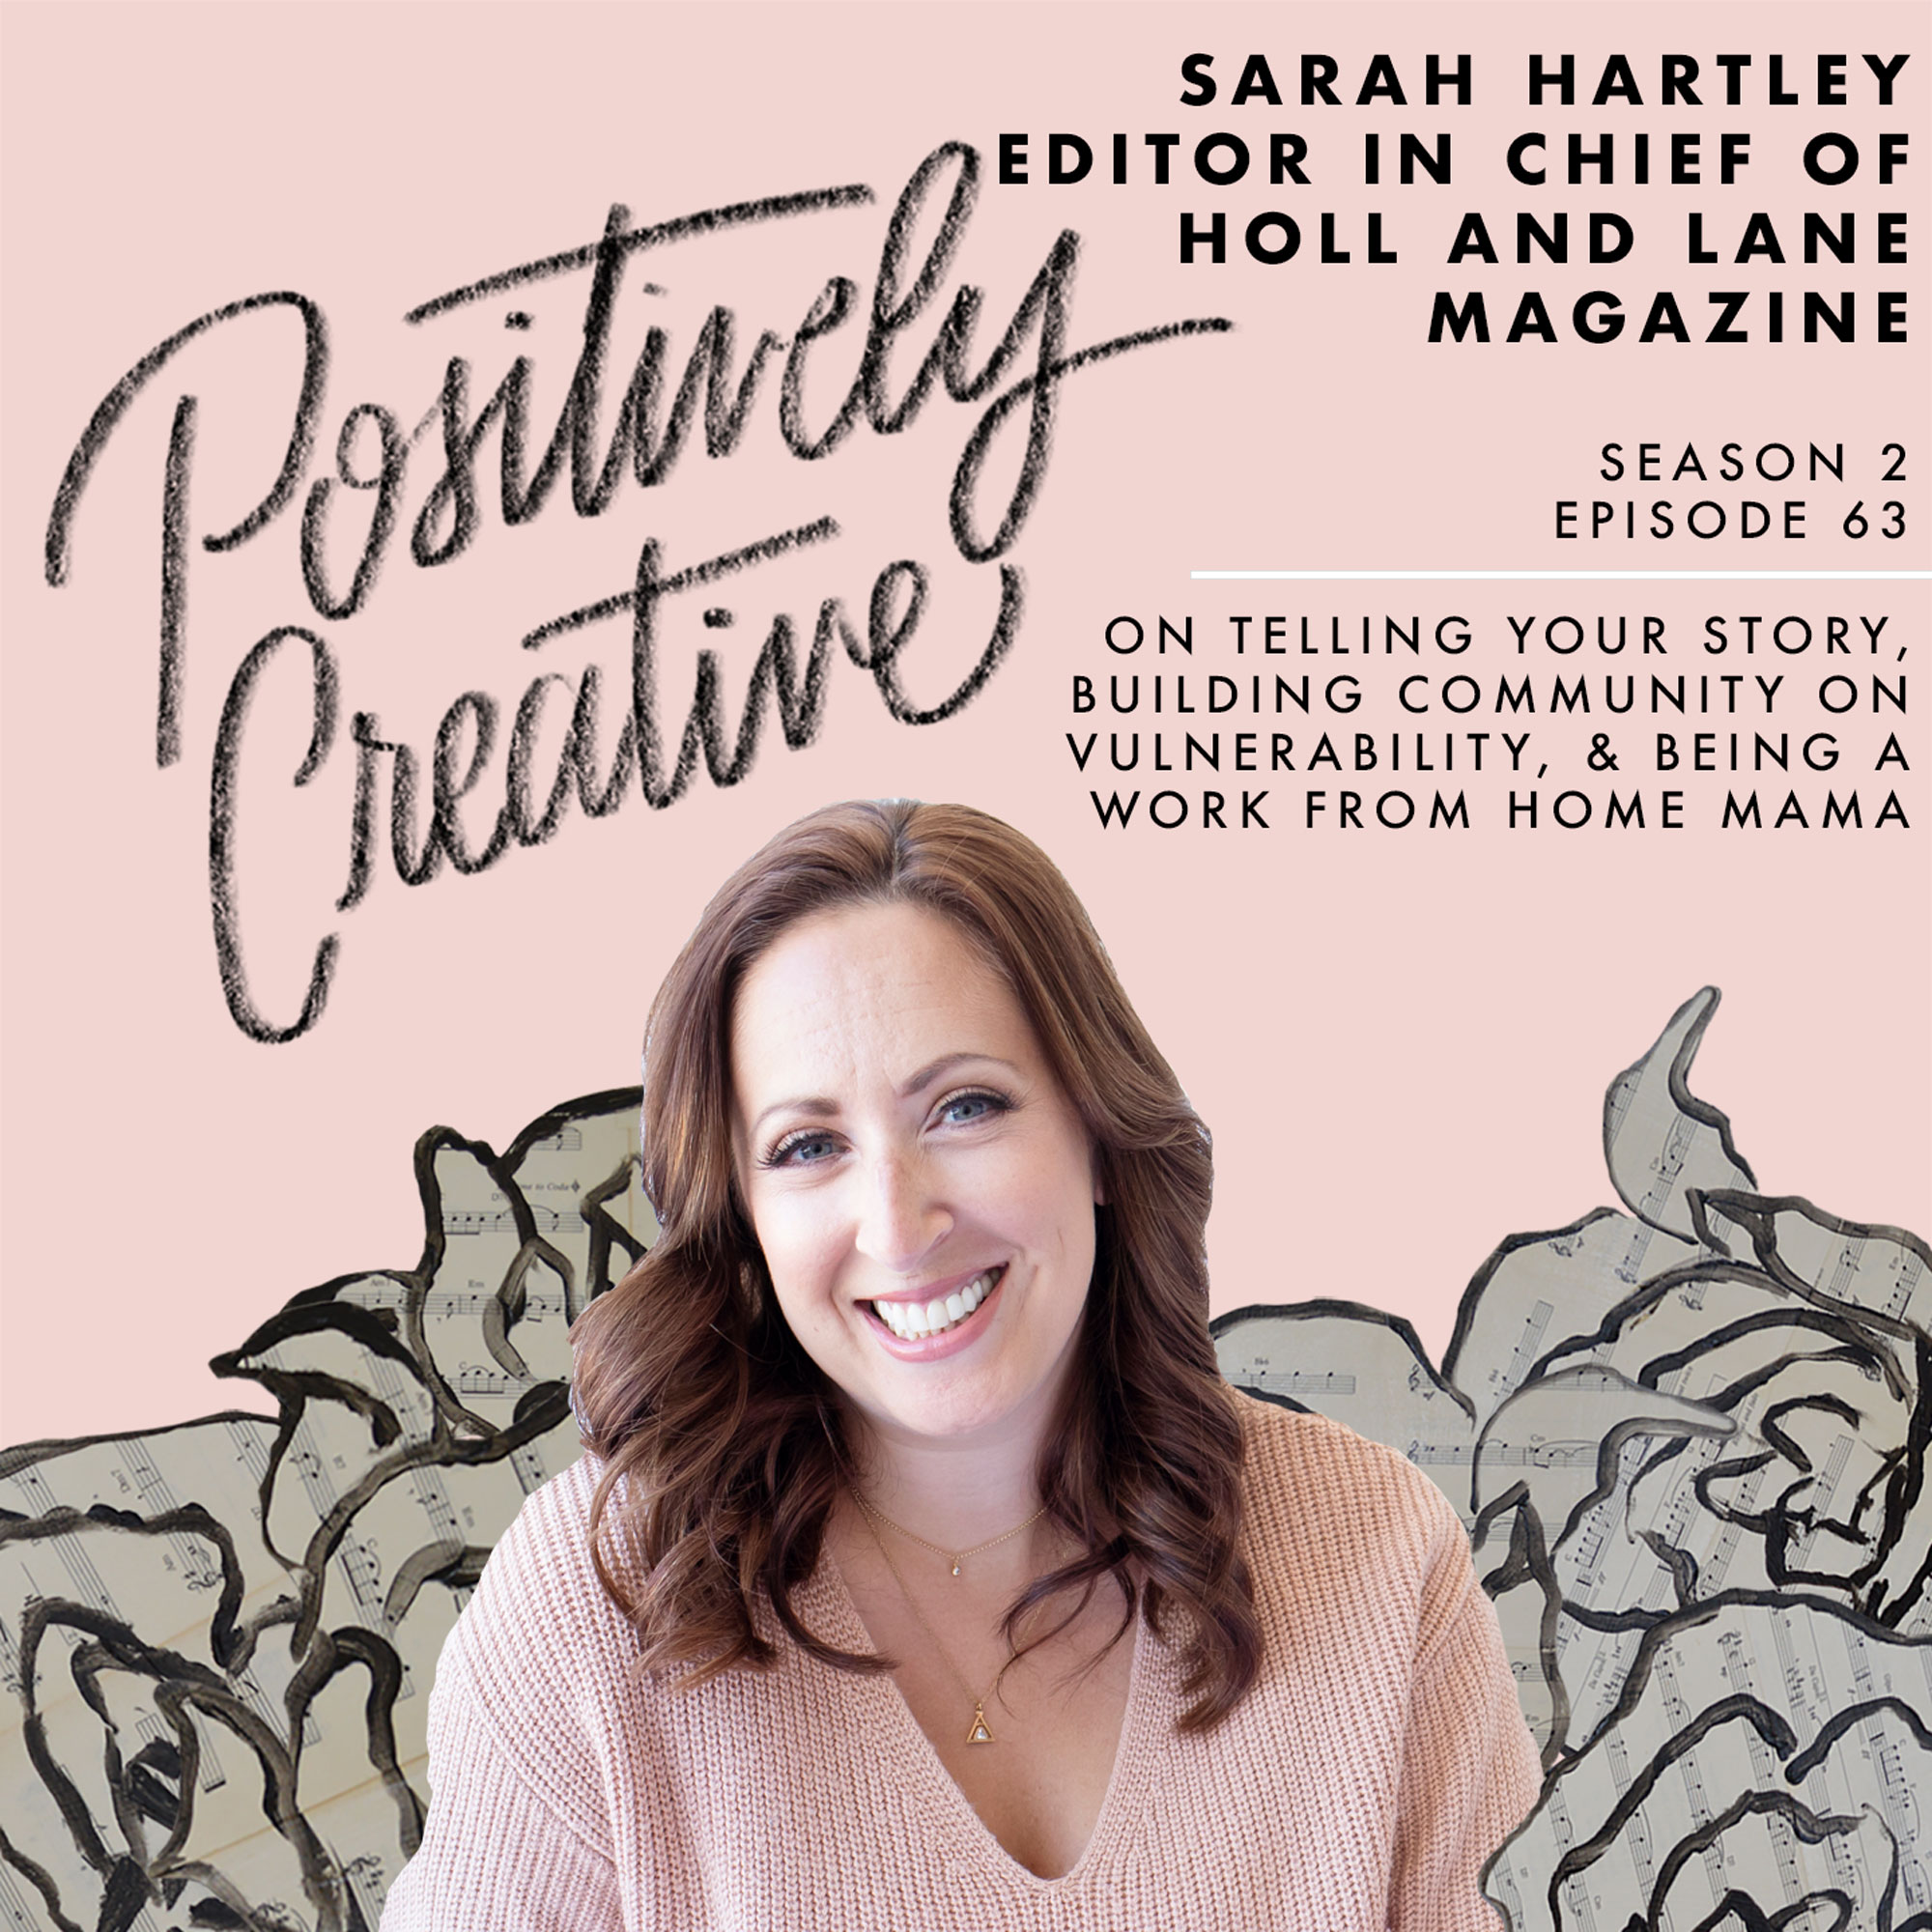 S2-Ep-63---Sarah-Hartley,-Editor-in-Chief-of-Holl-and-Lane-Magazine-on-Telling-Your-Story,-Building-Community-on-Vulnerability,-&-Being-a-Work-from-Home-Mama.jpg